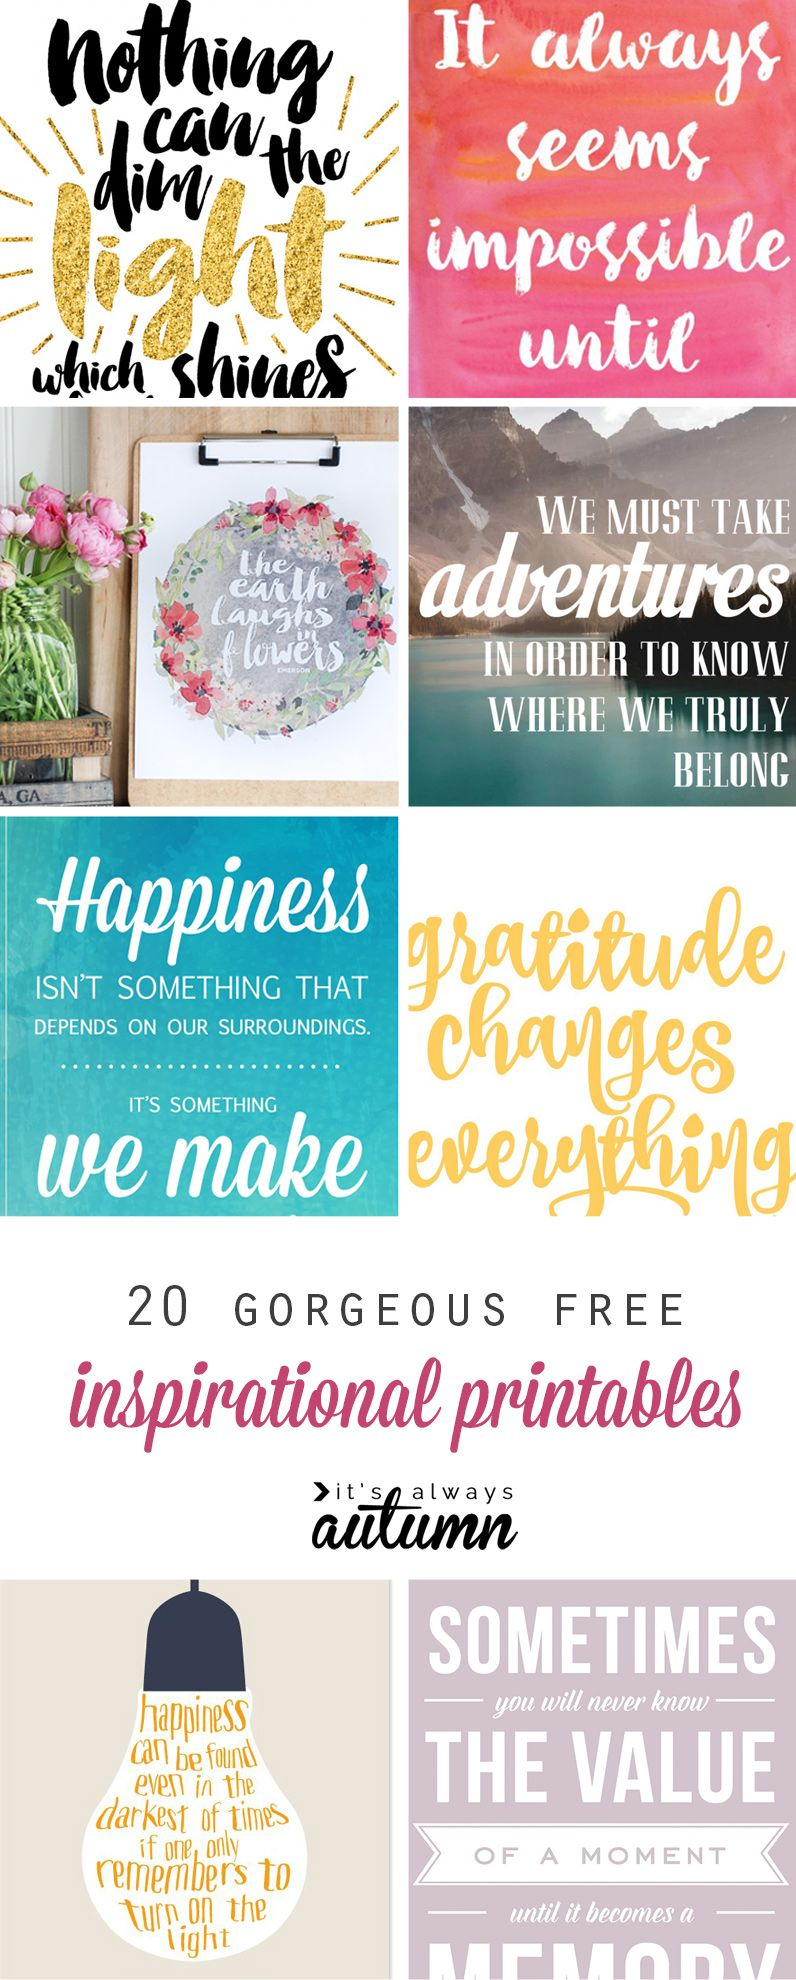 20 & modern FREE inspirational quote printables